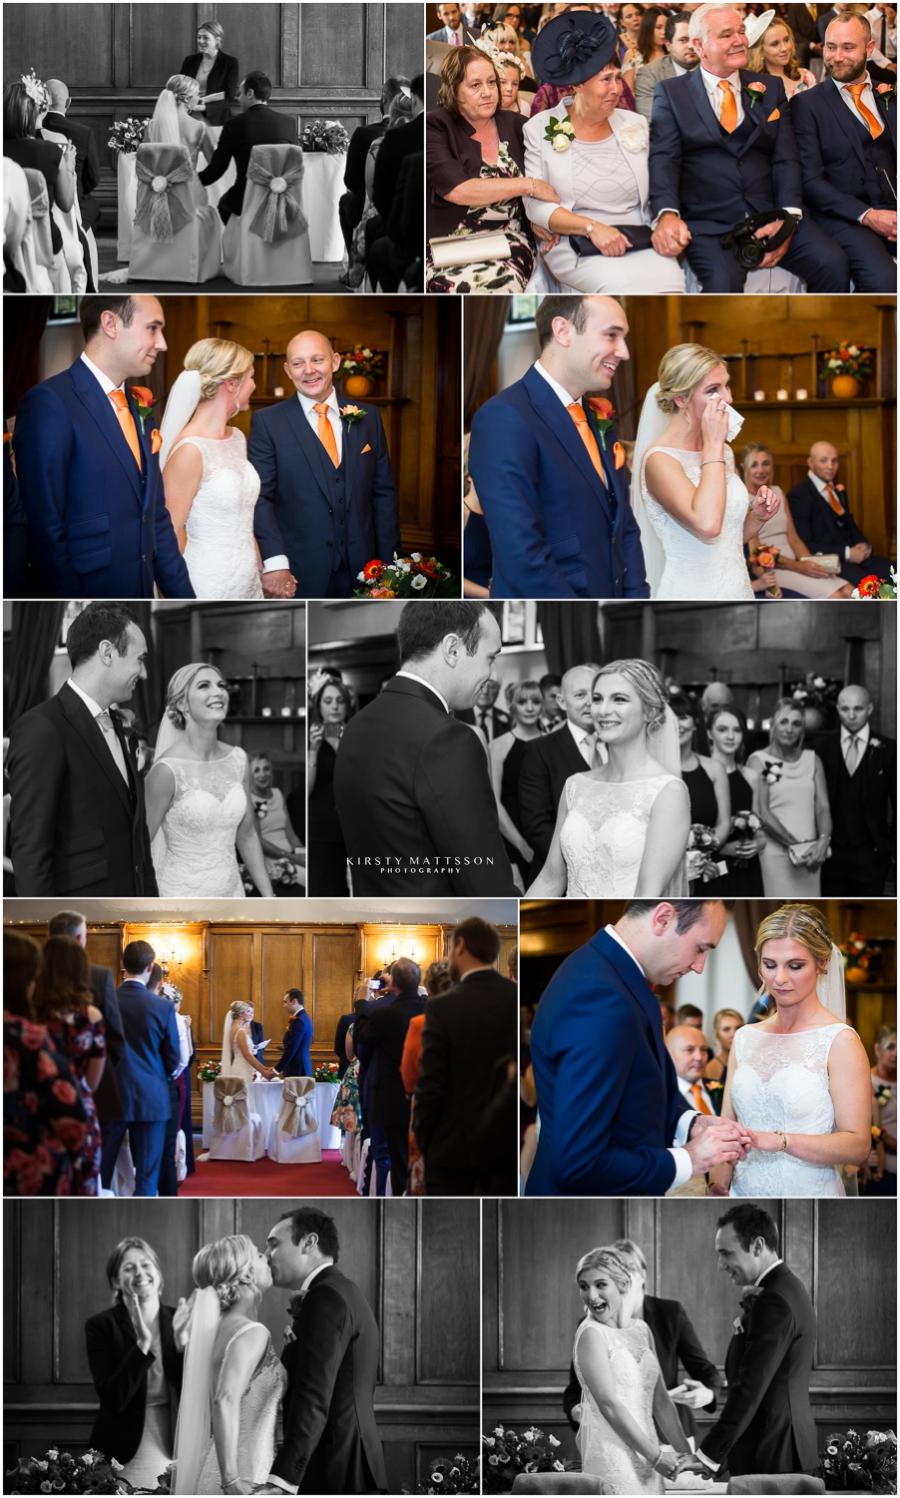 KM-rr-weddingphotography-15